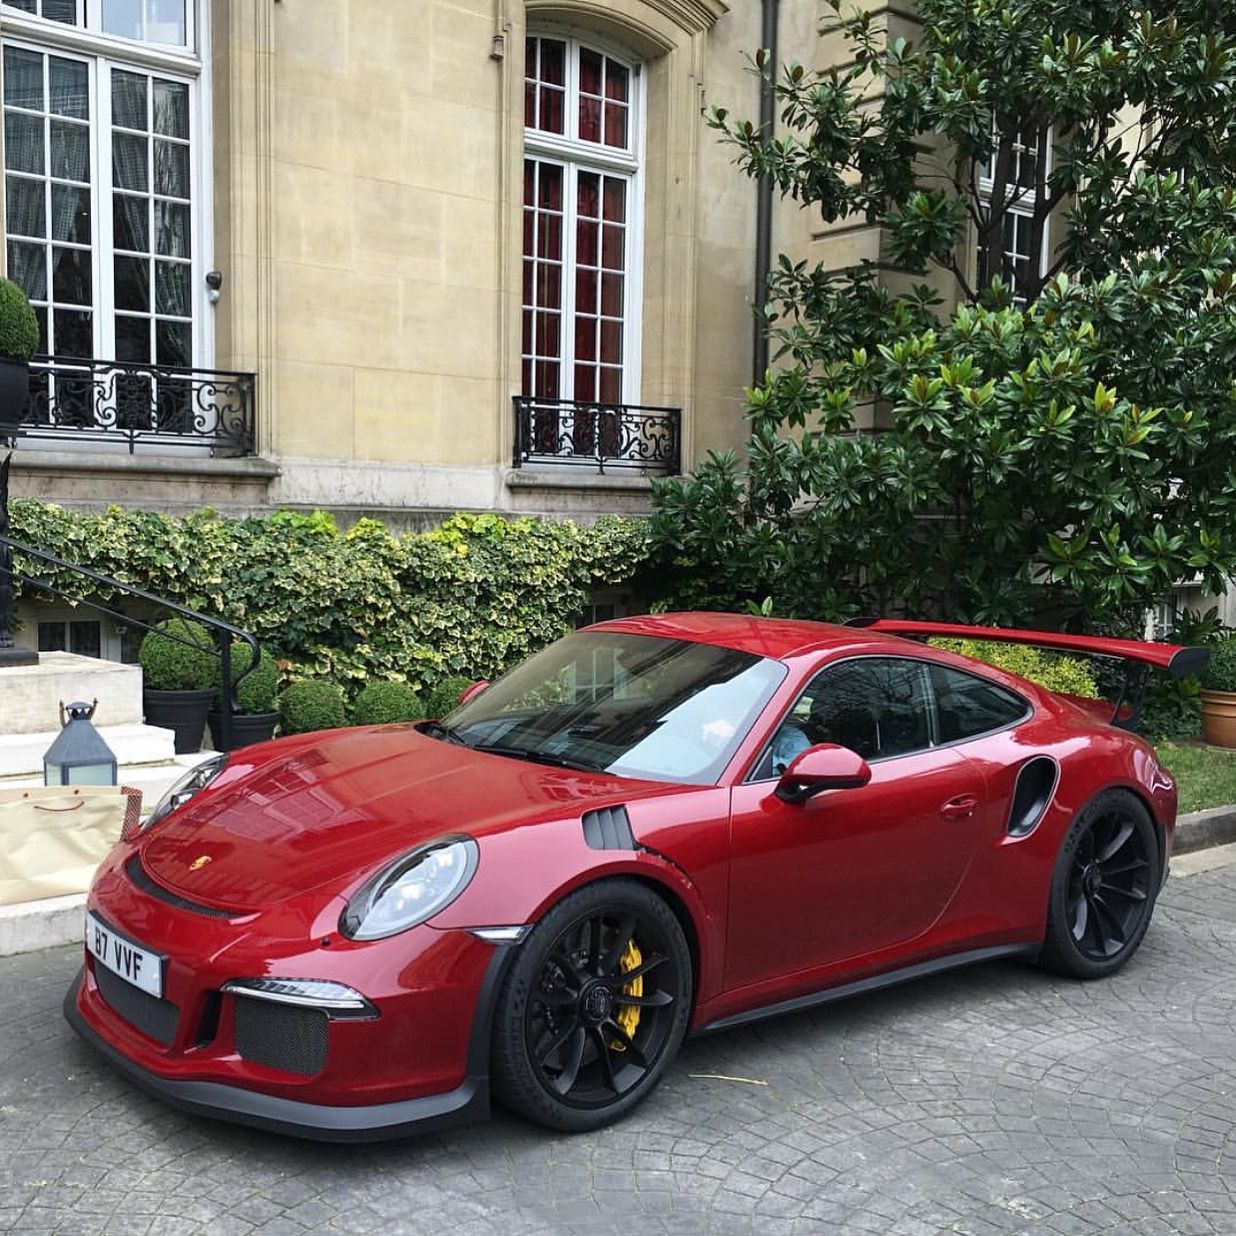 Red Porsche Car: Porsche 991 GT3 RS Painted In Paint To Sample Carmine Red